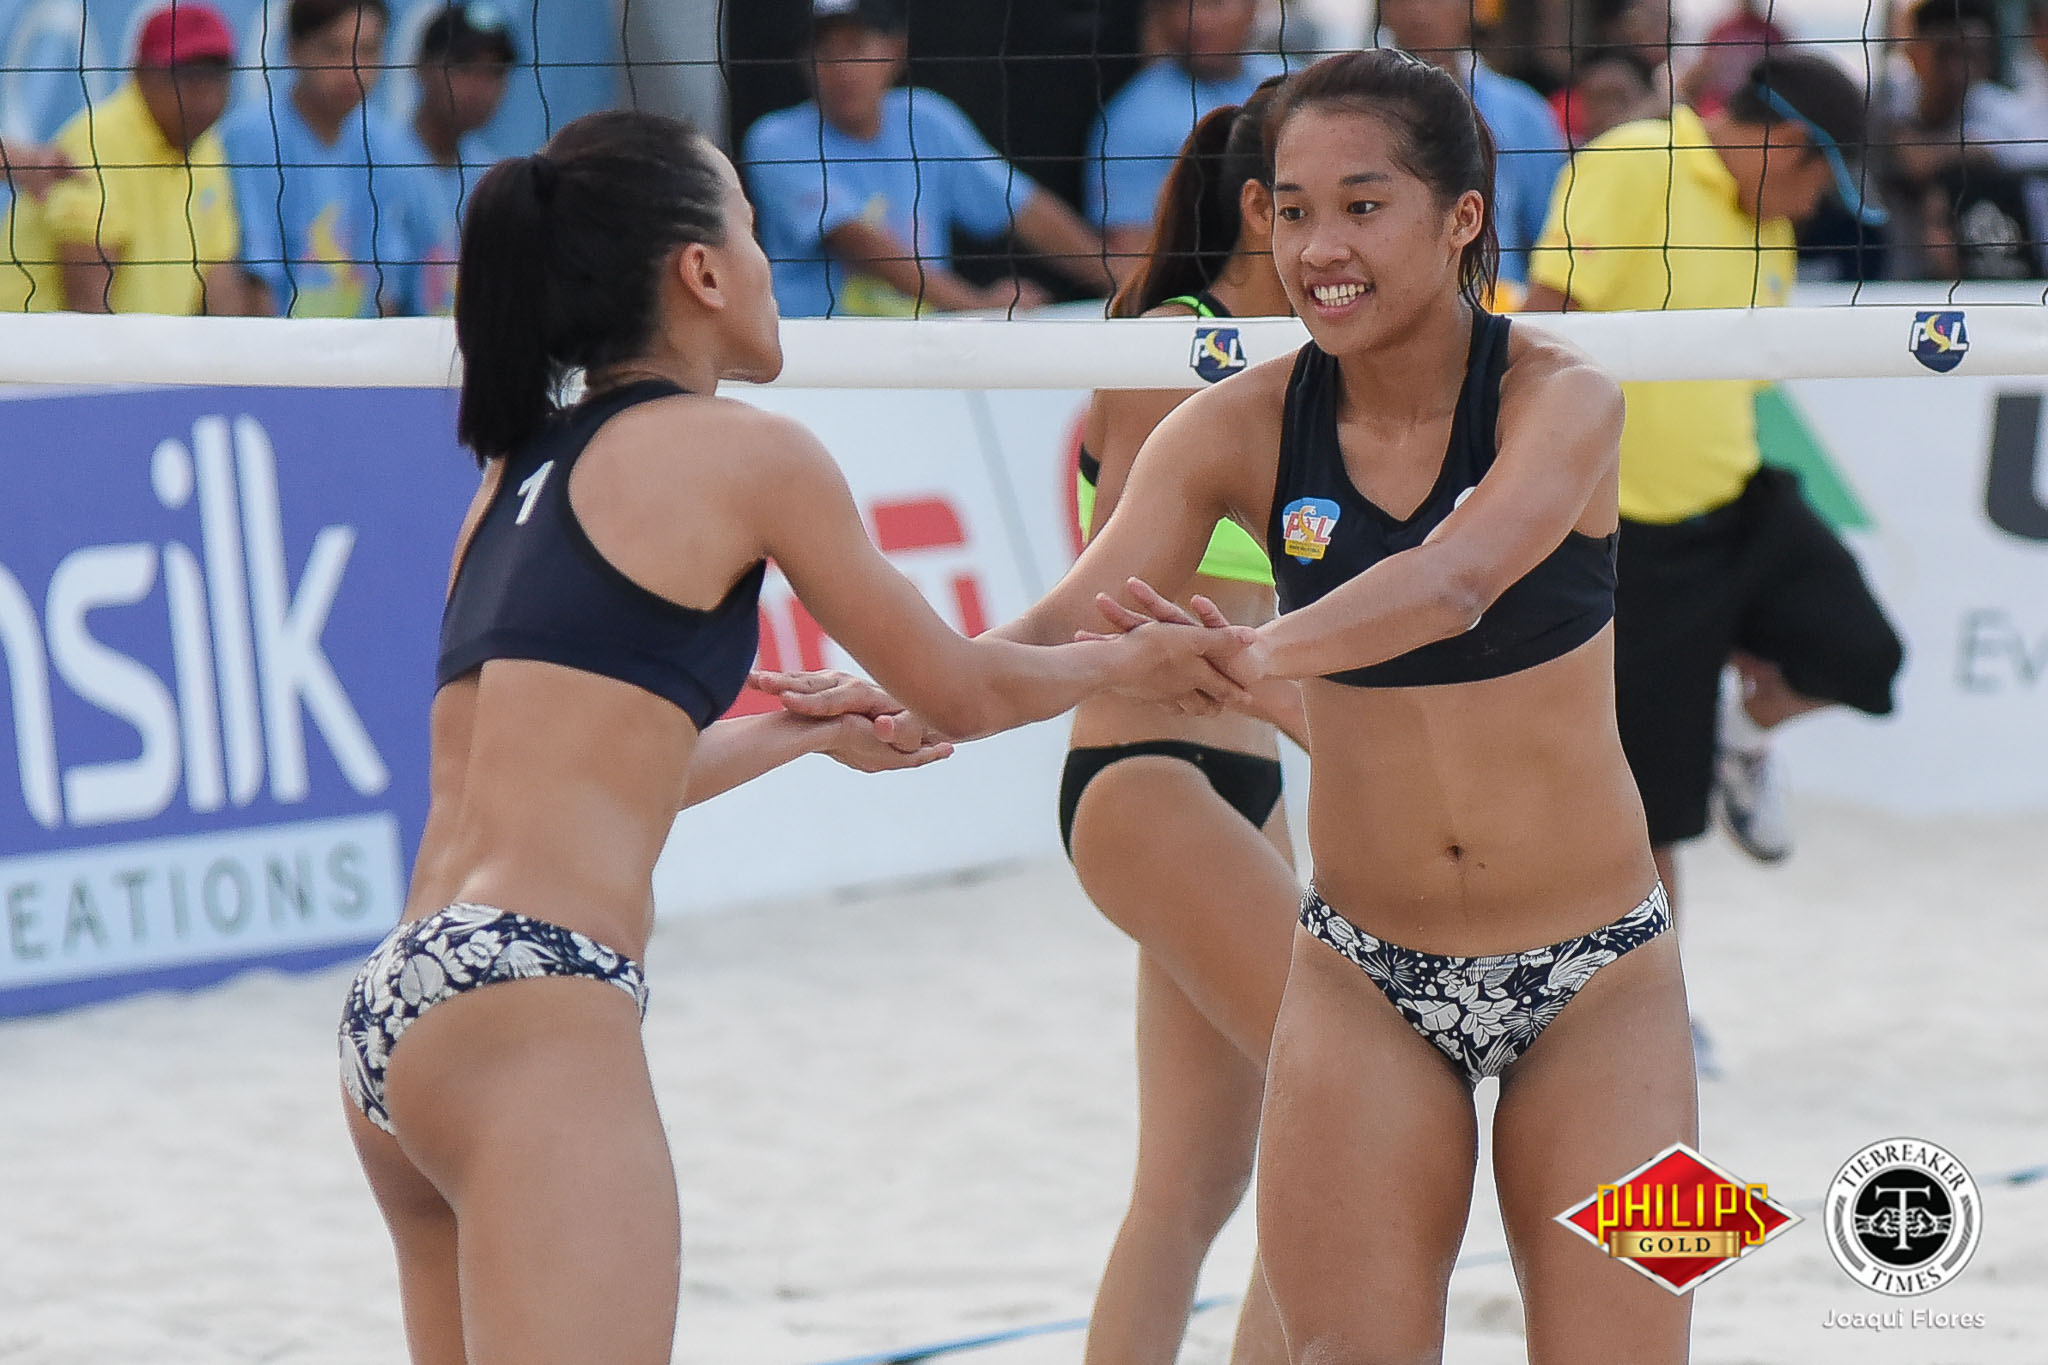 PSL Beach Volleyball – Pons-2613